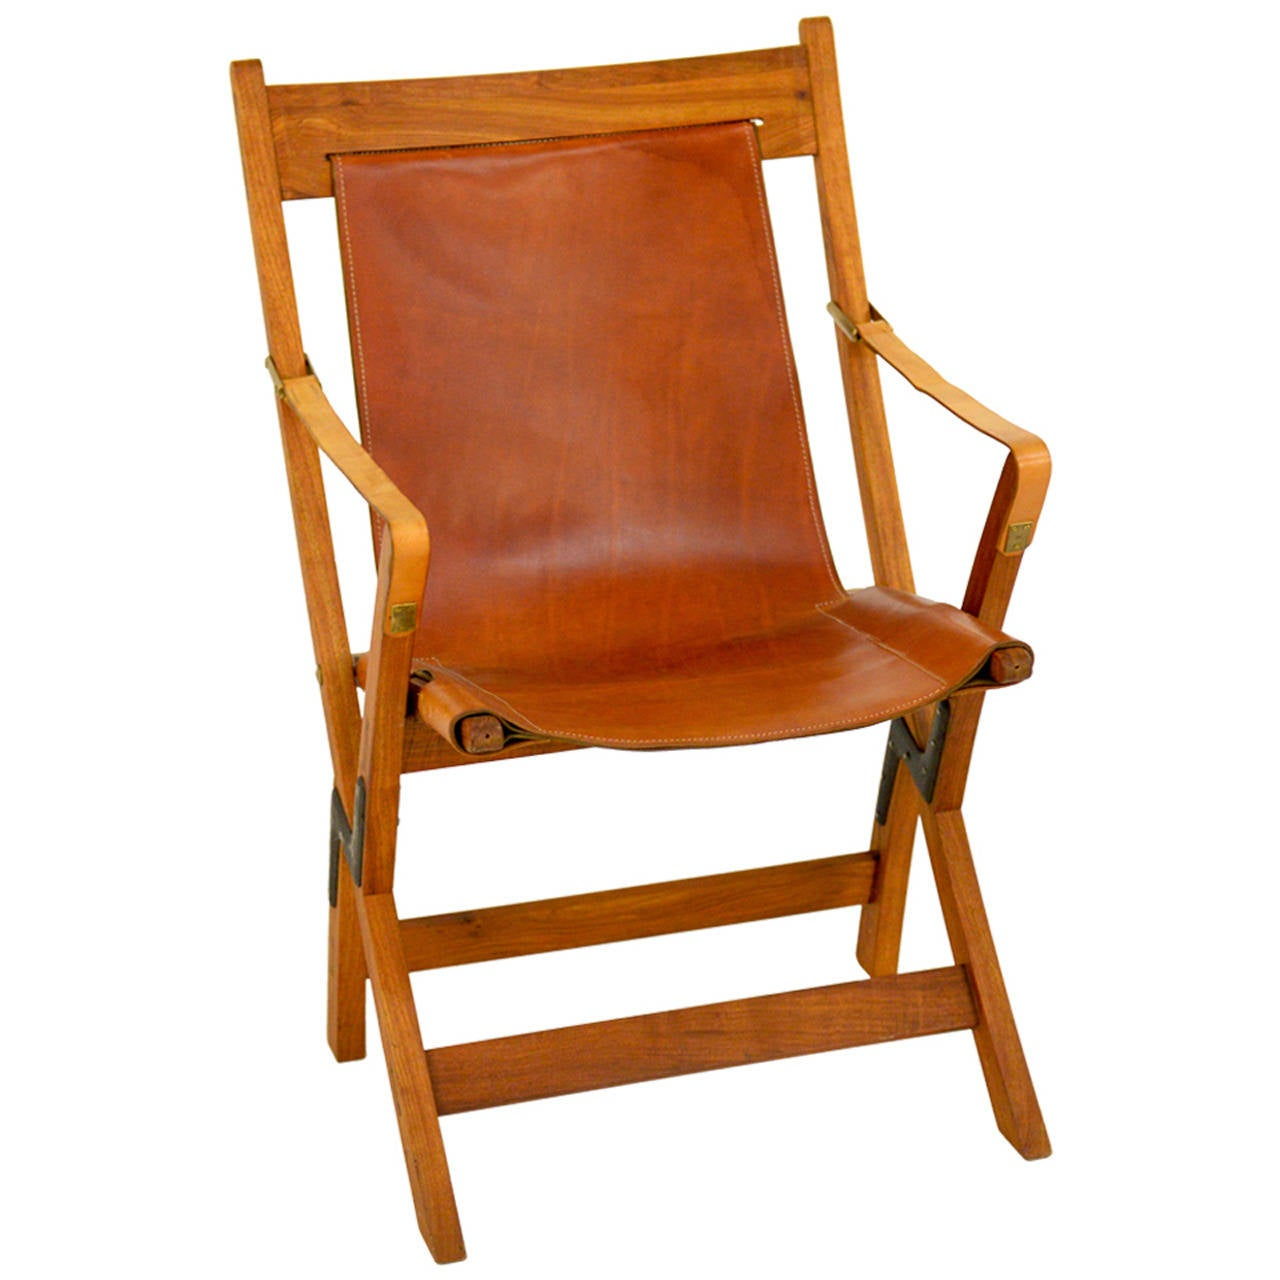 Prototype Jens Quistgaard Sax Folding Chair For Sale At